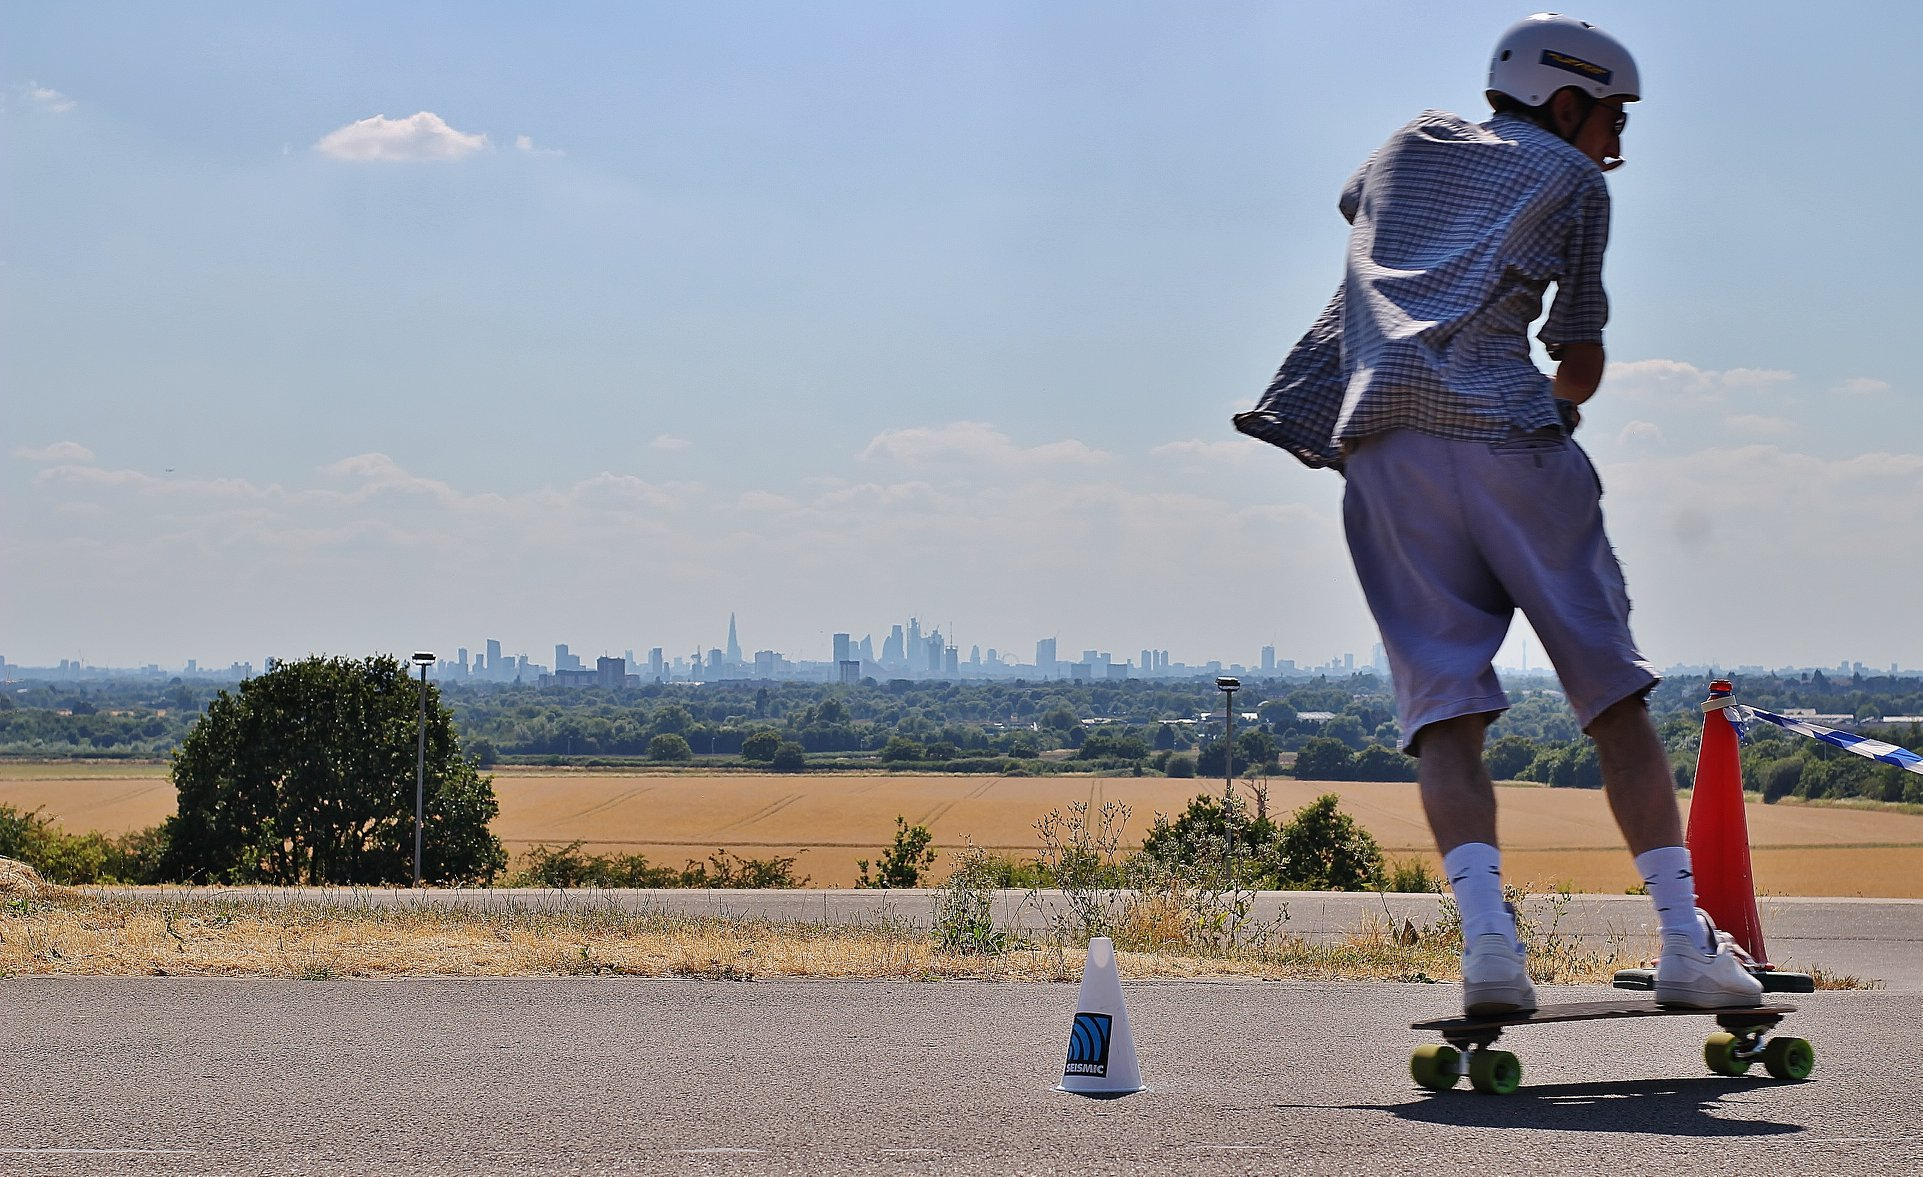 Chris Charalambous passes in front of the London skyline in the distance.